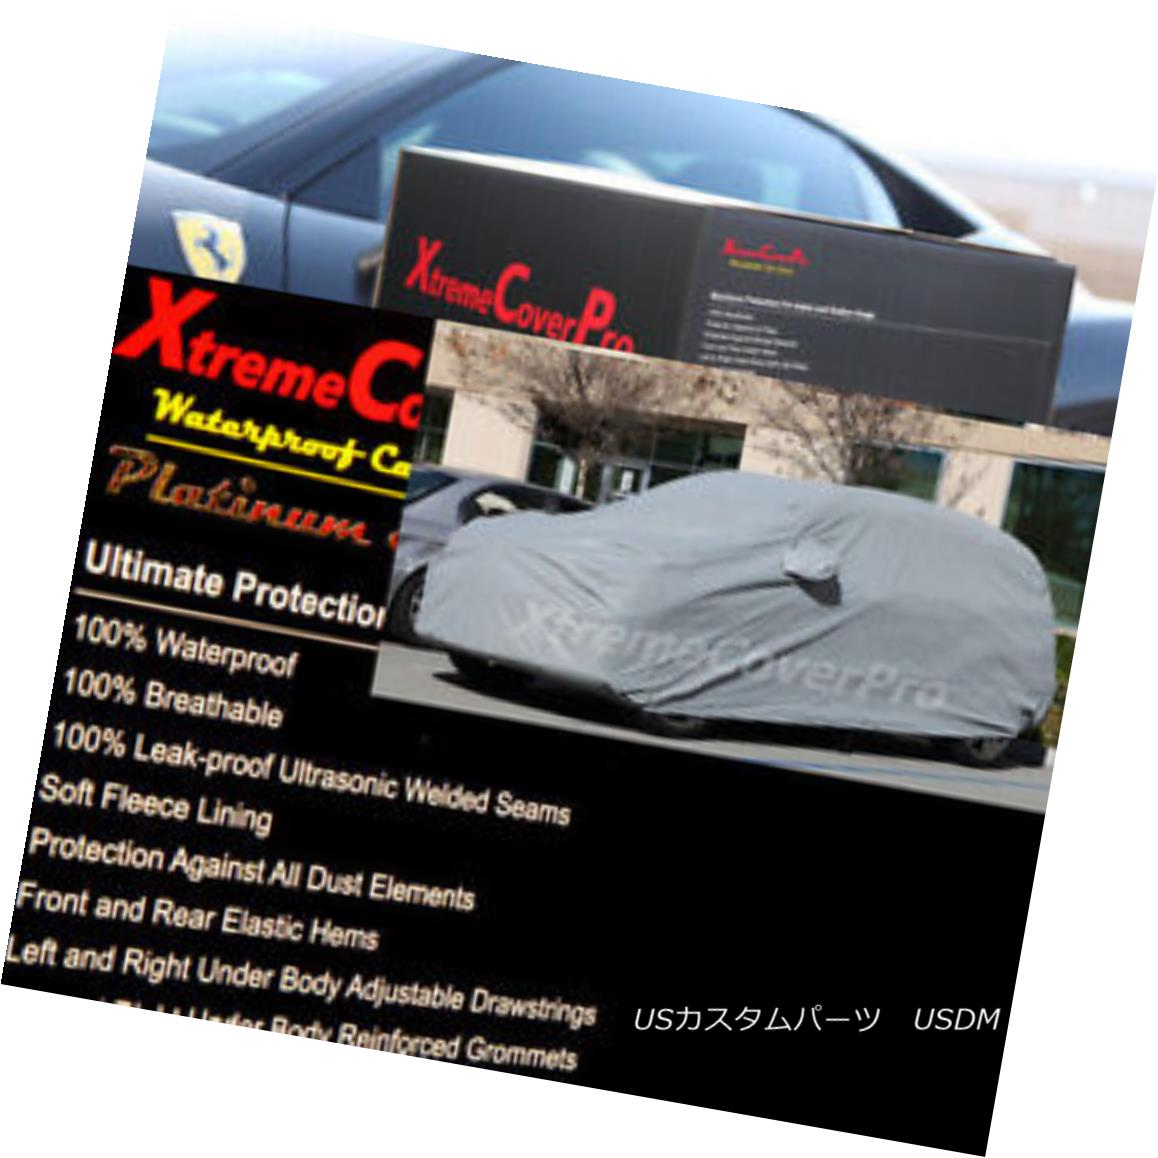 カーカバー 1992 1993 1994 1995 GMC Yukon Waterproof Car Cover w/MirrorPocket 1992年1993年1994年1995年GMCユーコン防水カーカバー付き(MirrorPocket)